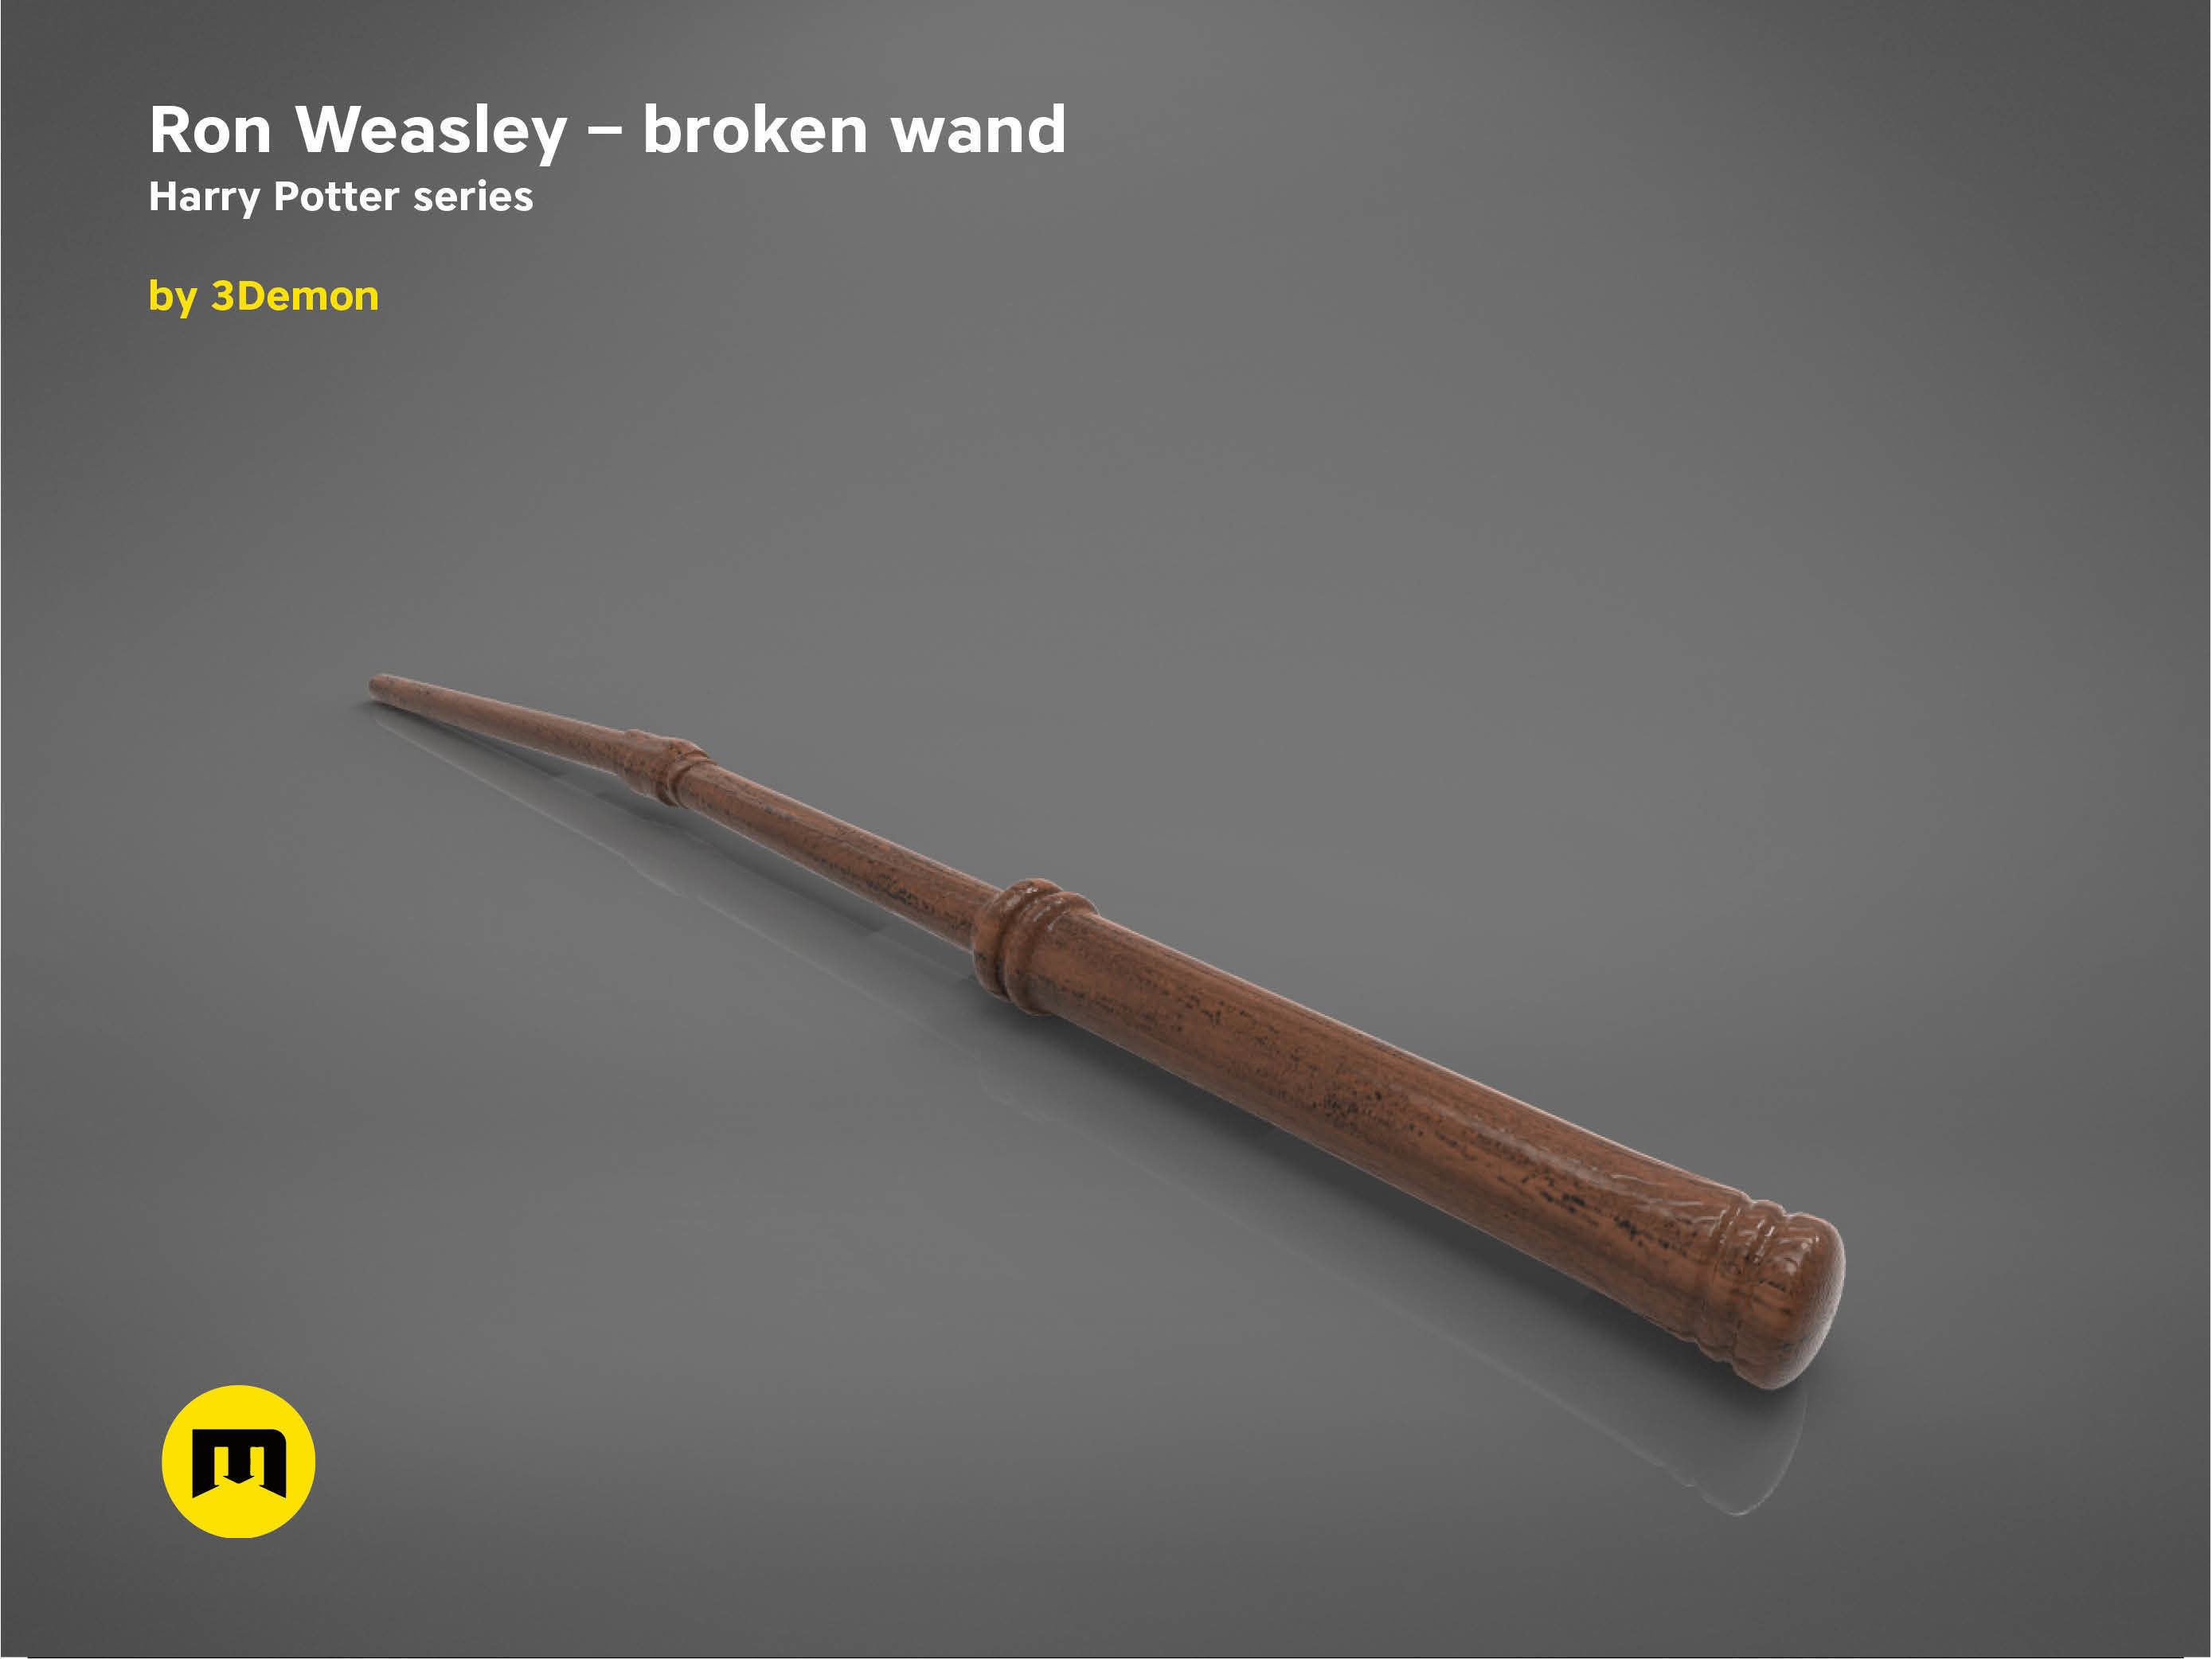 Ron Weasley broken wand - Harry Potter films